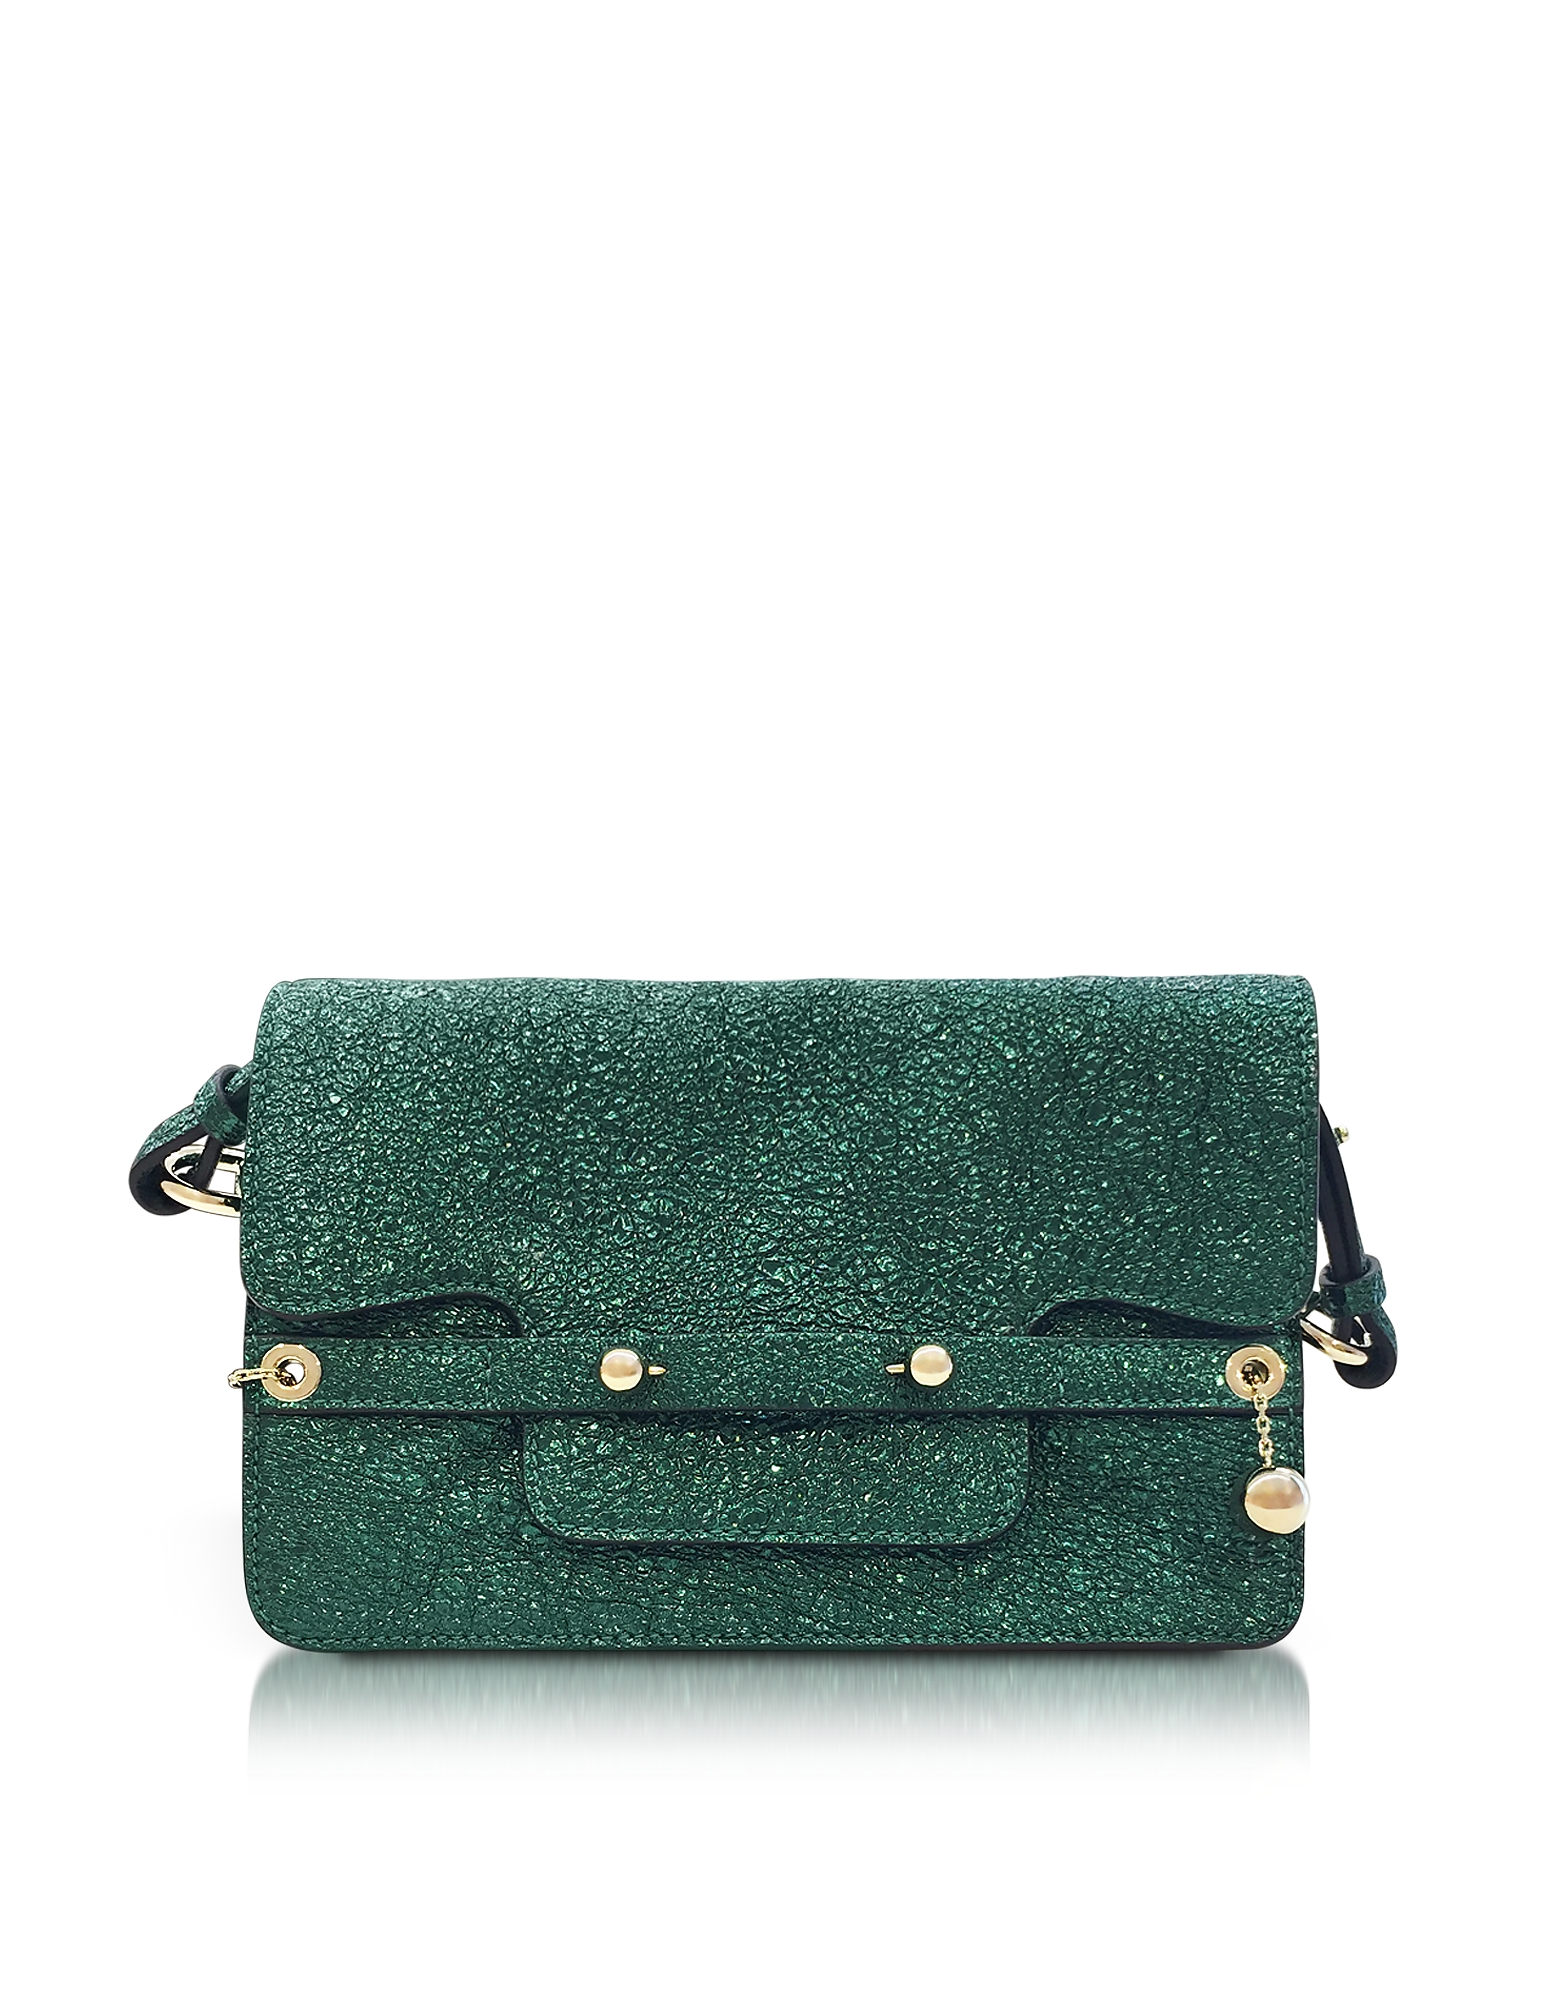 RED Valentino Handbags, Dark Green Crackled Metallic Leather Flap Top Crossbody Bag